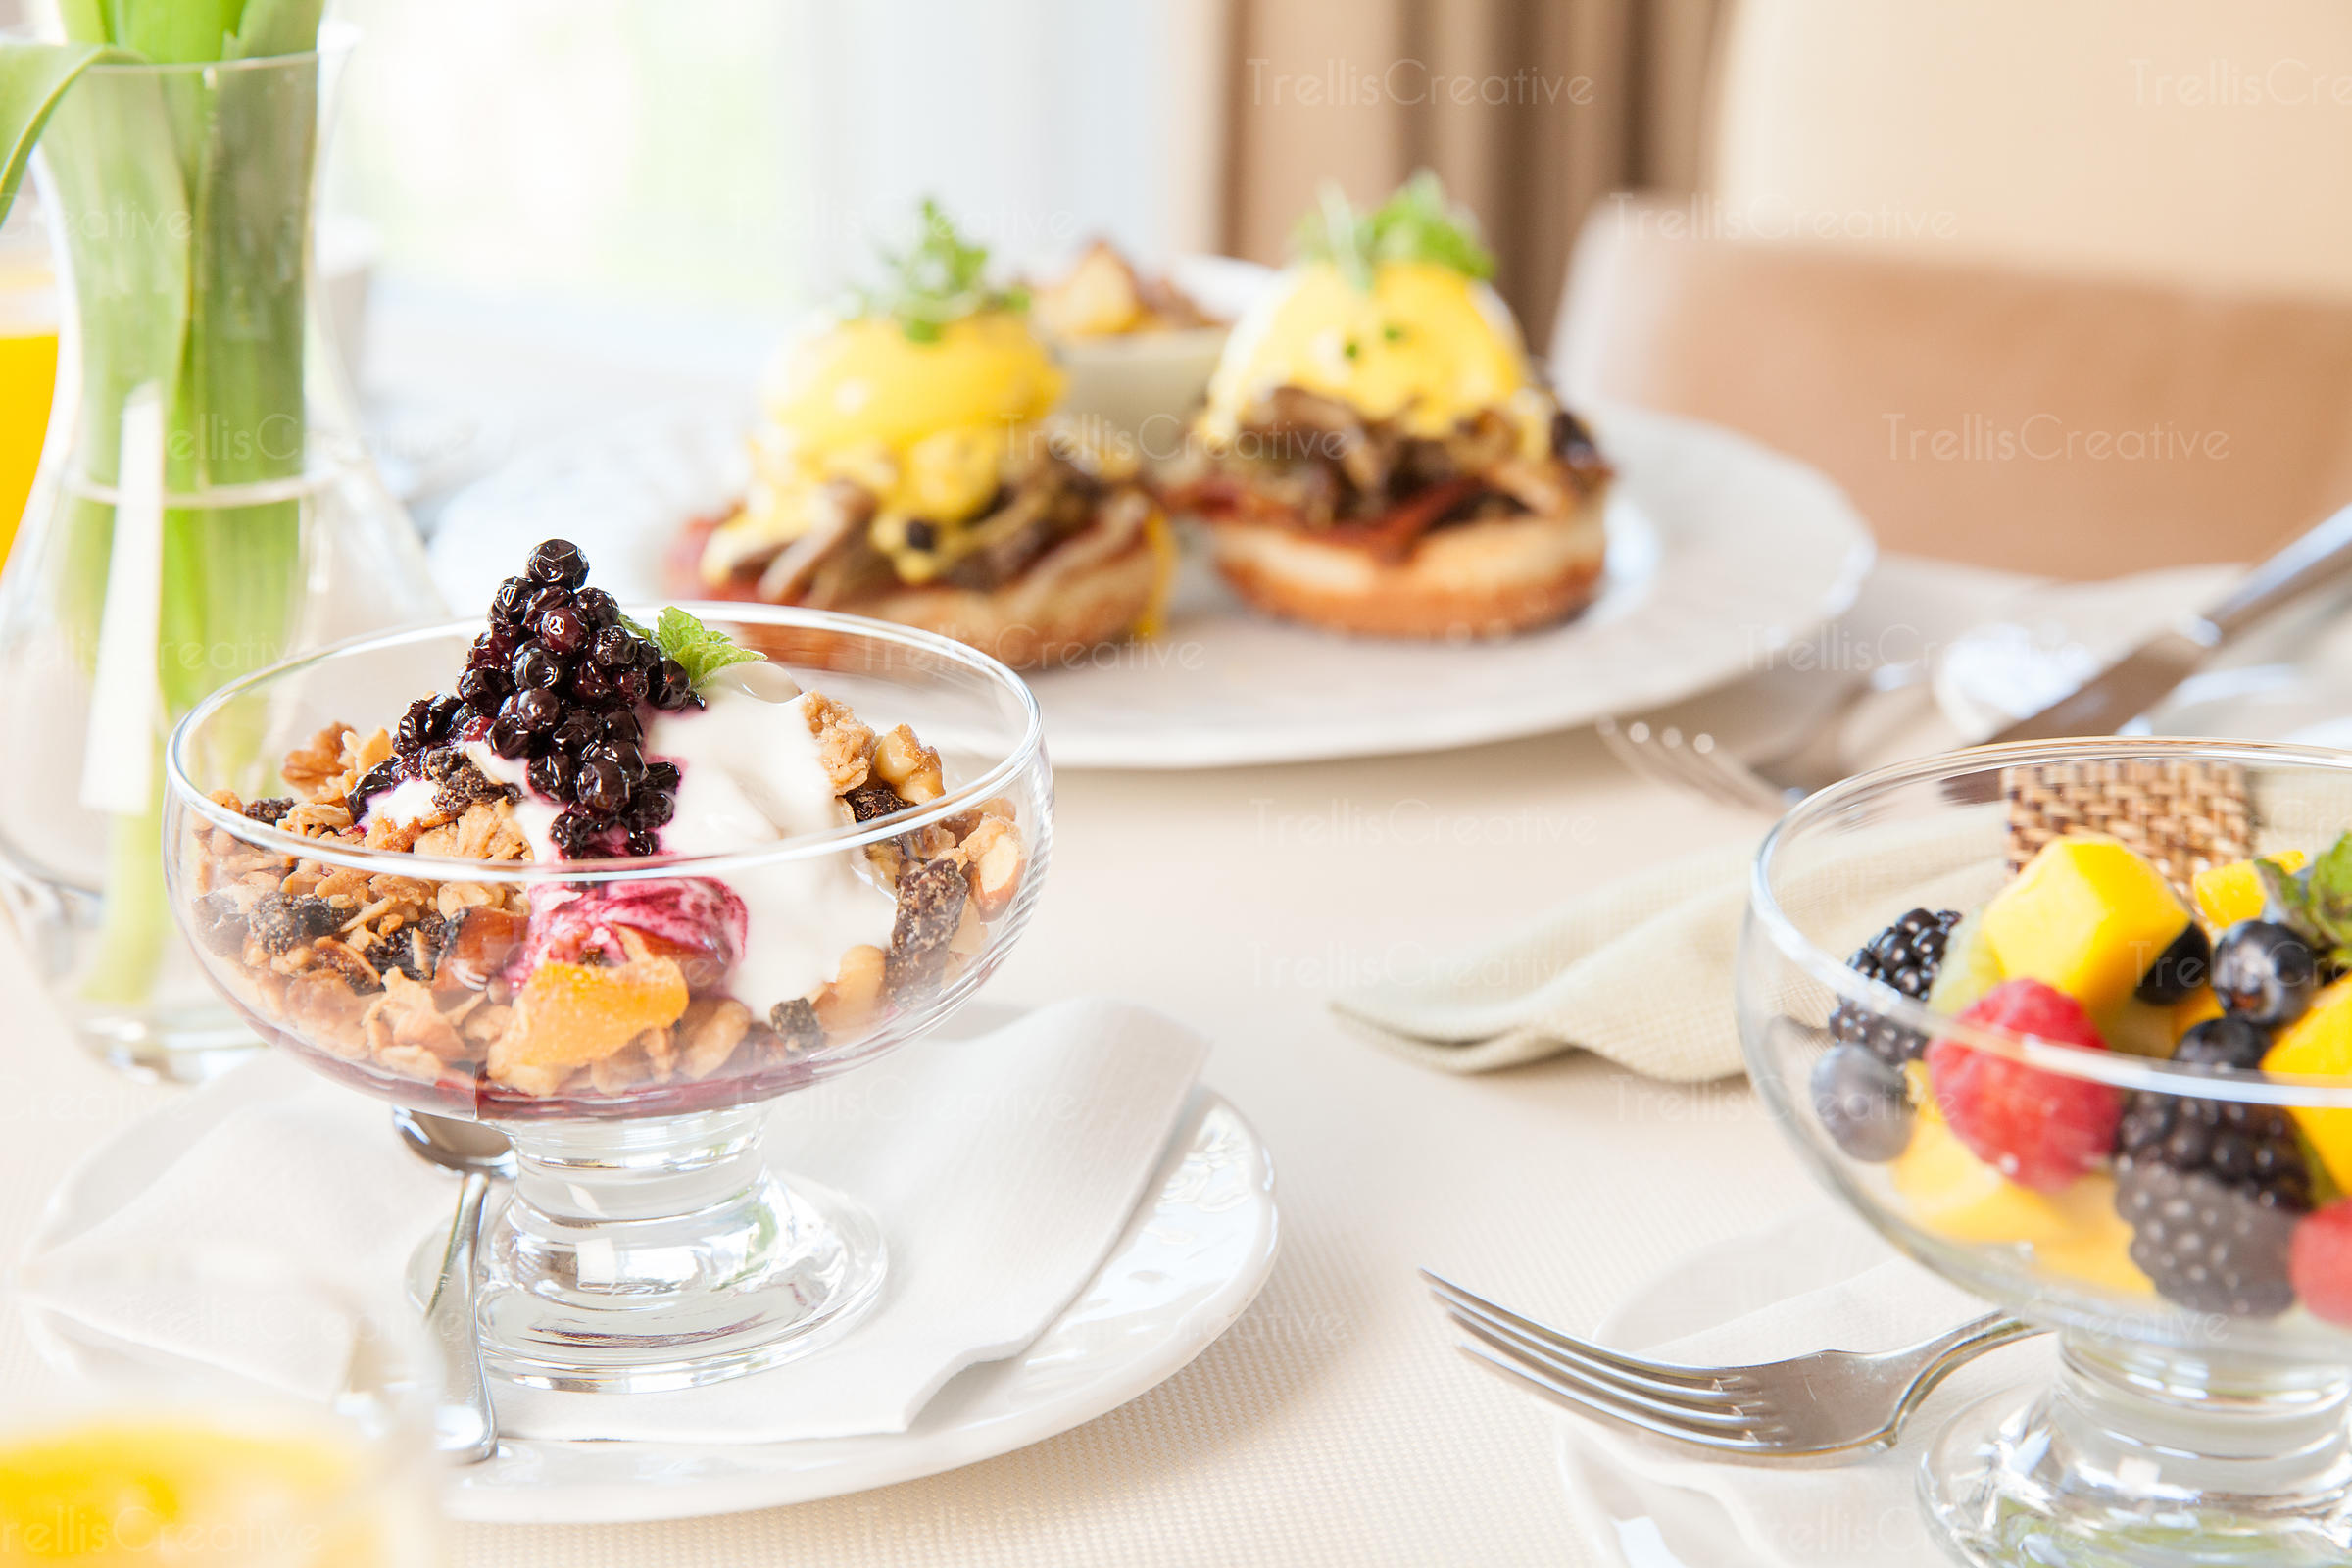 Gourment breakfast with fresh fruits, parfiets and eggs benedicts